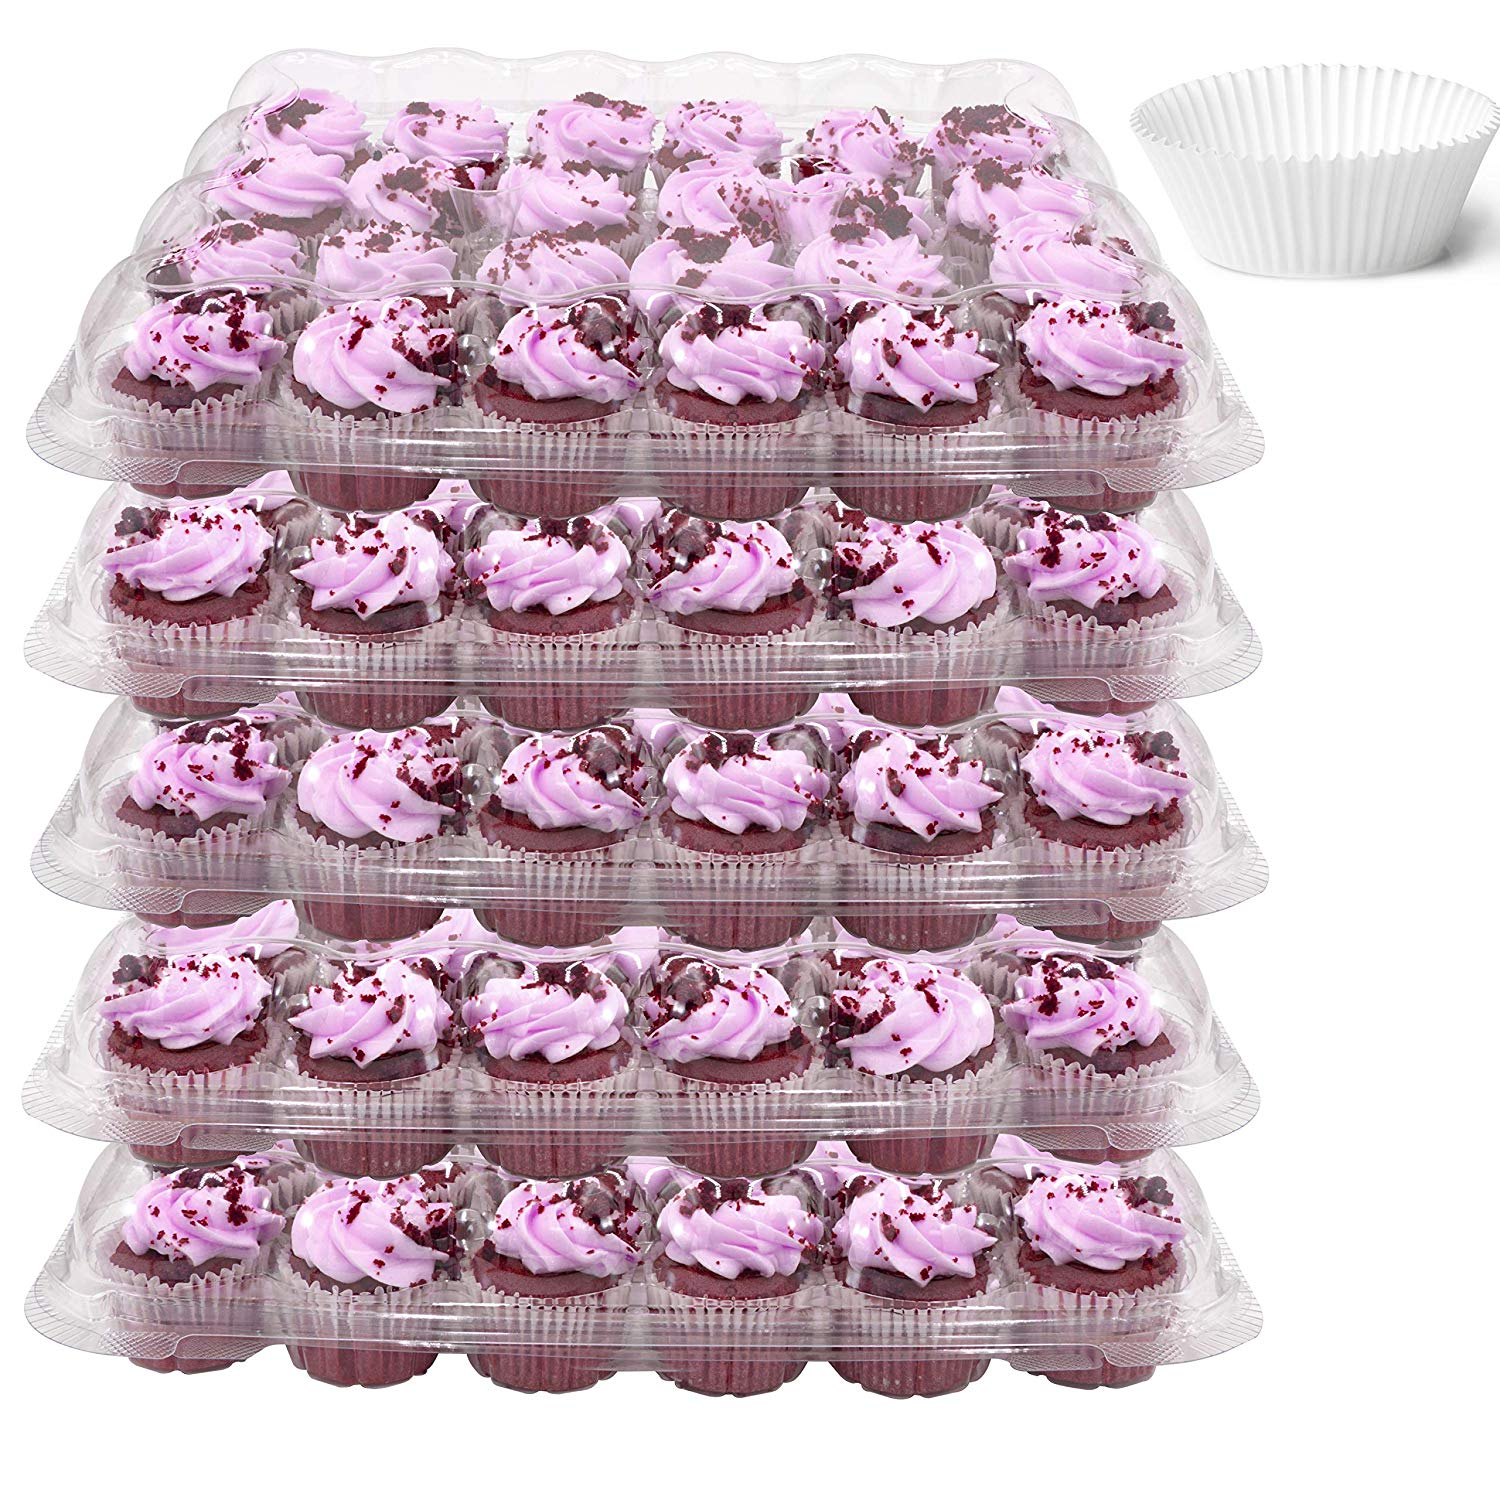 Pack of 50 Katgely Mini Cupcake Container for Dozen Mini Cupcakes